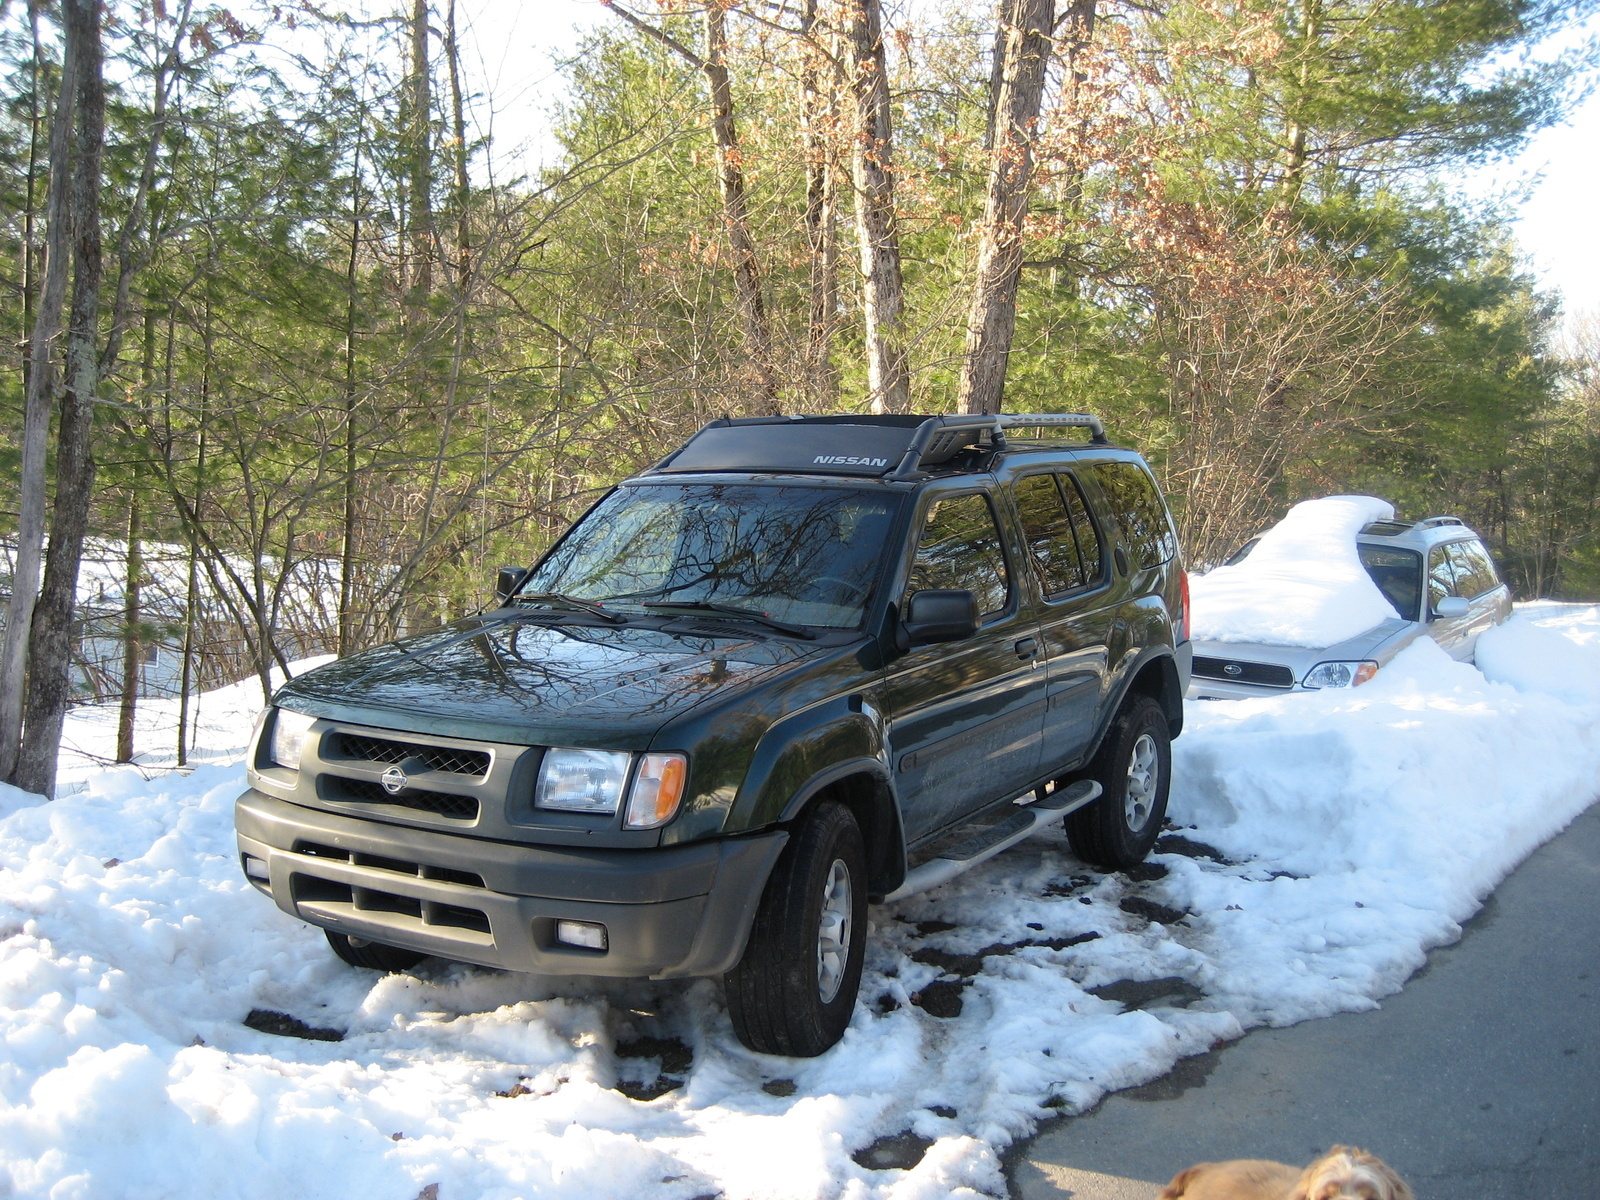 2000 Nissan Pathfinder Overview Cargurus 04 Frontier Timing Belt Diagram 3 Engine Picture Of Xterra Se 4wd Exterior Gallery Worthy